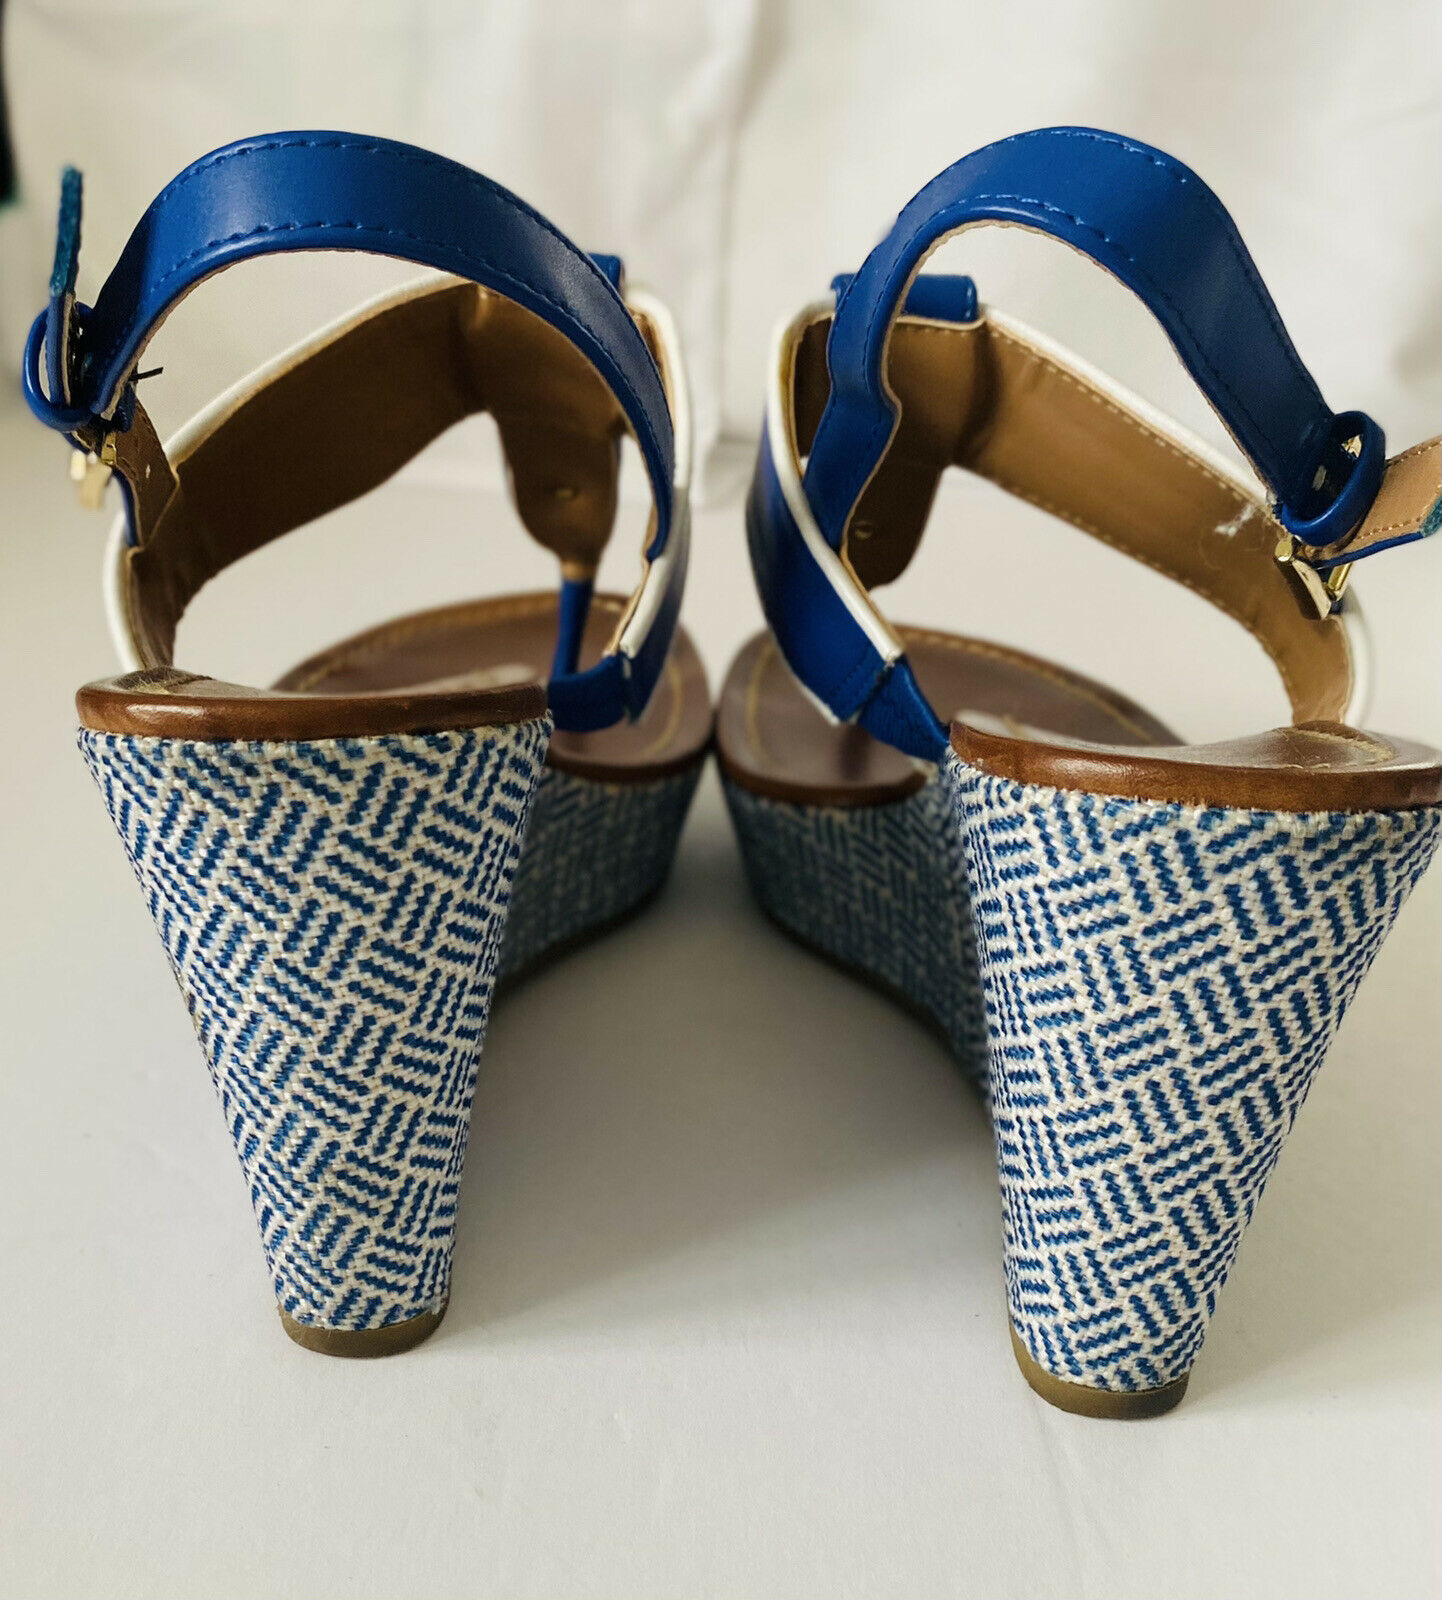 Tommy Hilfiger Women's Size 7.5 M Wedges Navy, - image 3